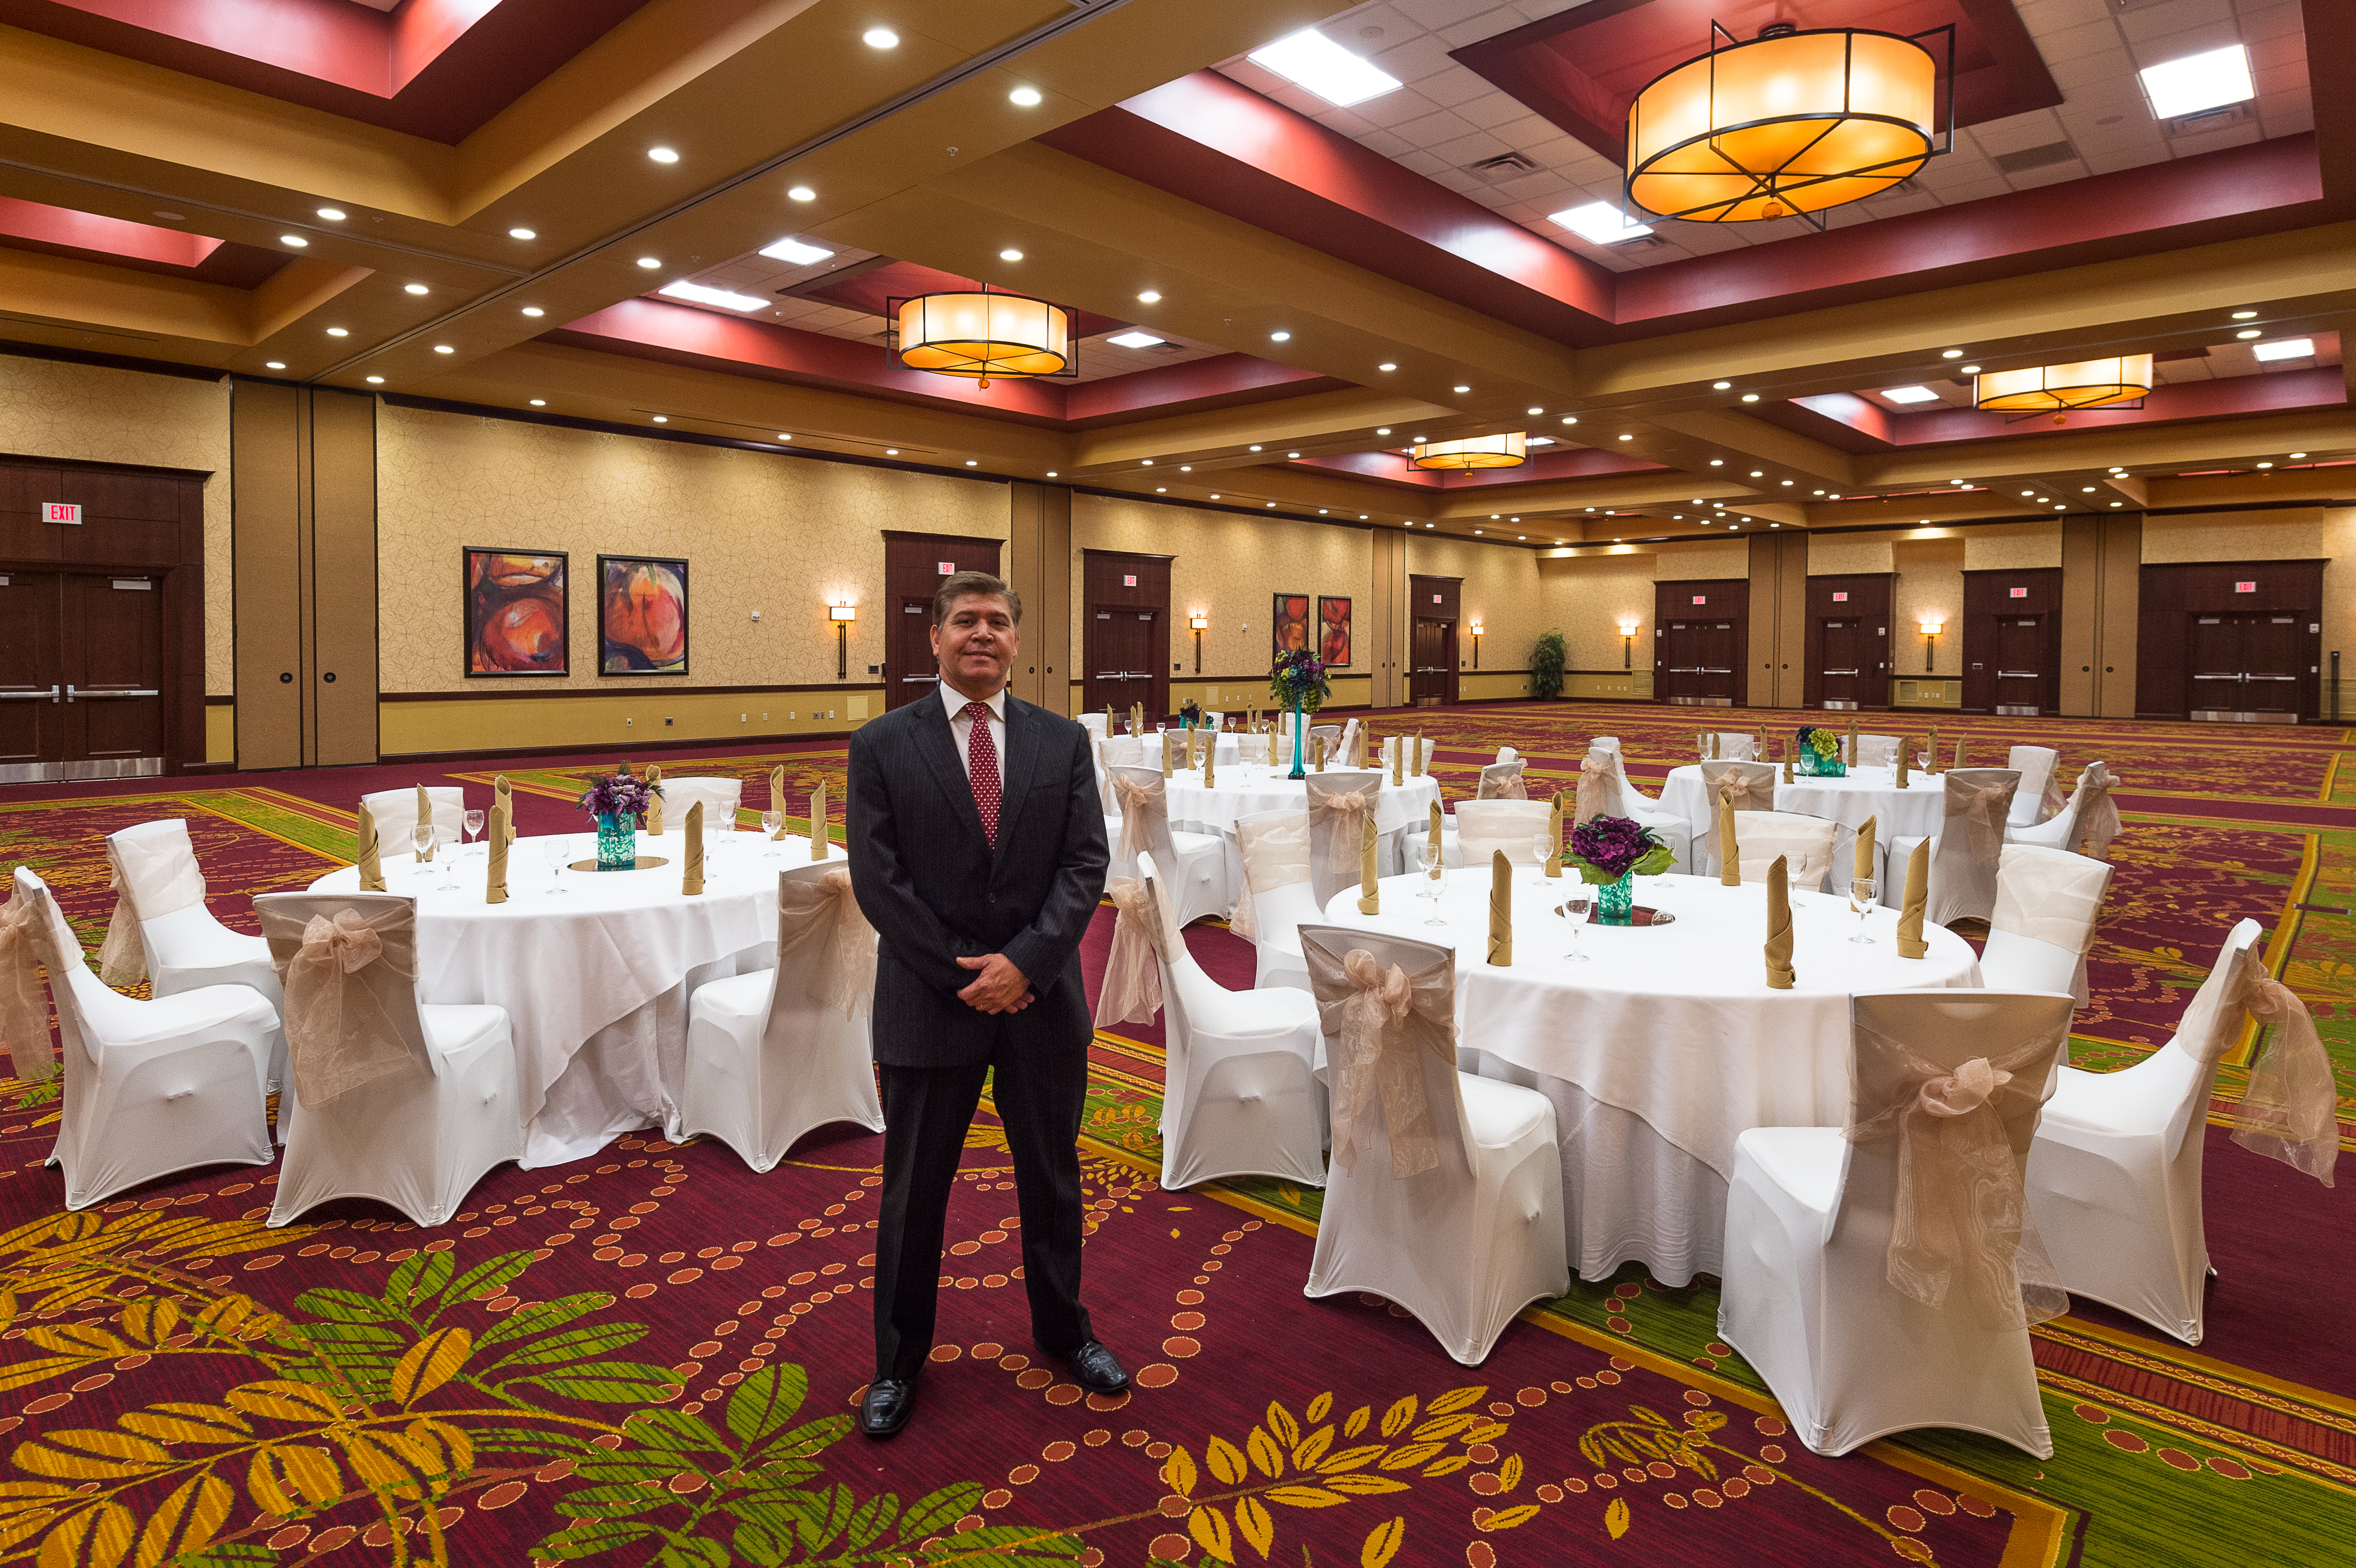 Our two convention hotels offer nearly 25,000 sq. ft. of flexible meeting space